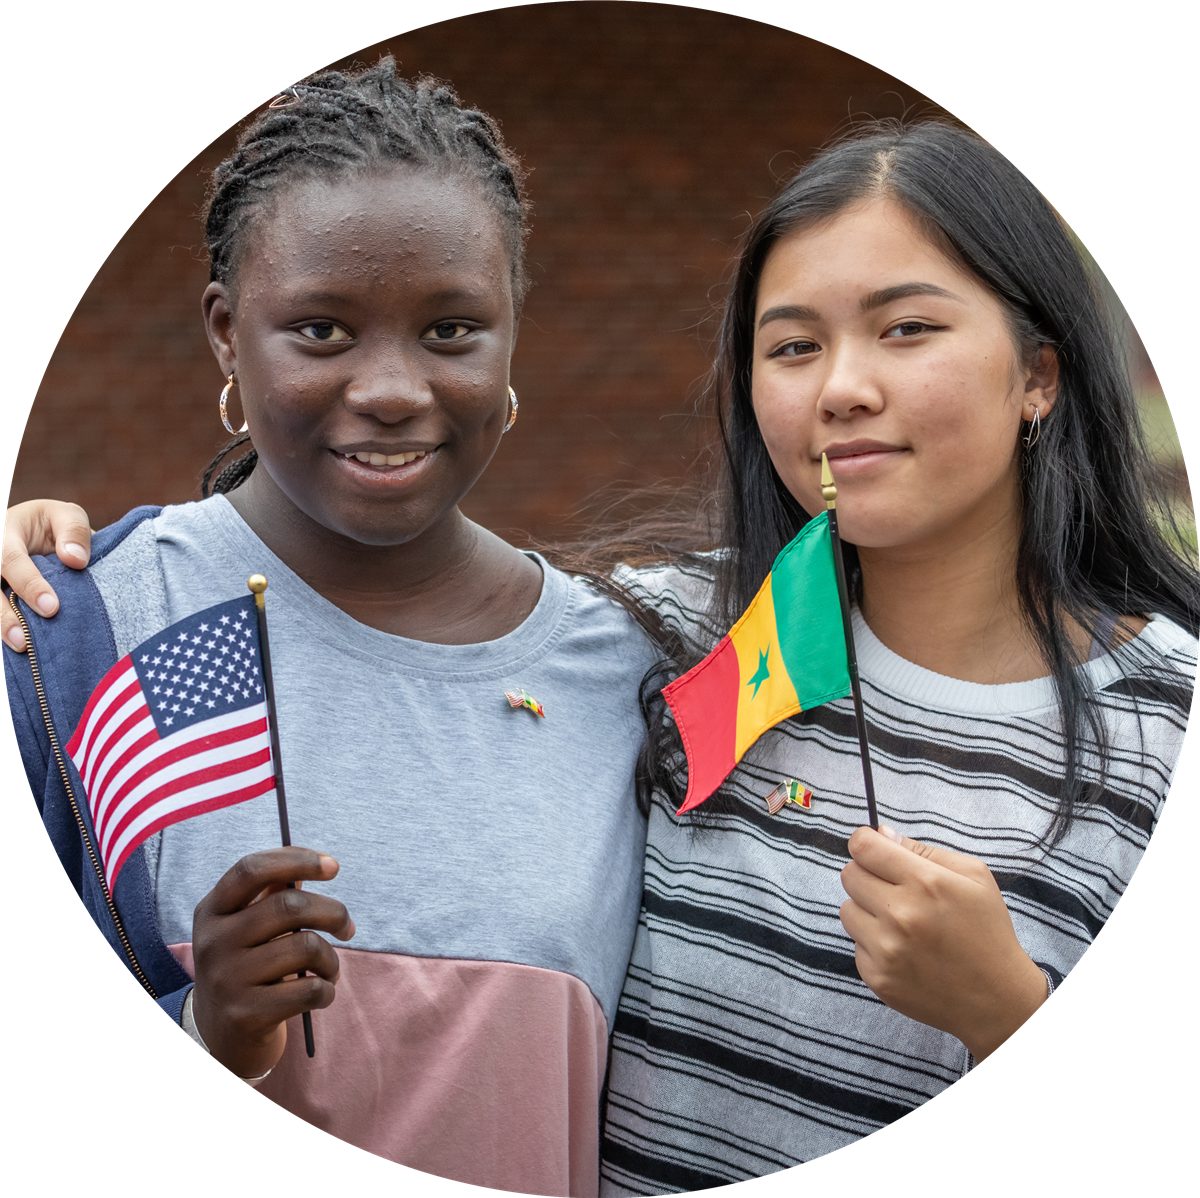 Two girls from Woodstock Academy and Senegal hold American and Senegalese flags.